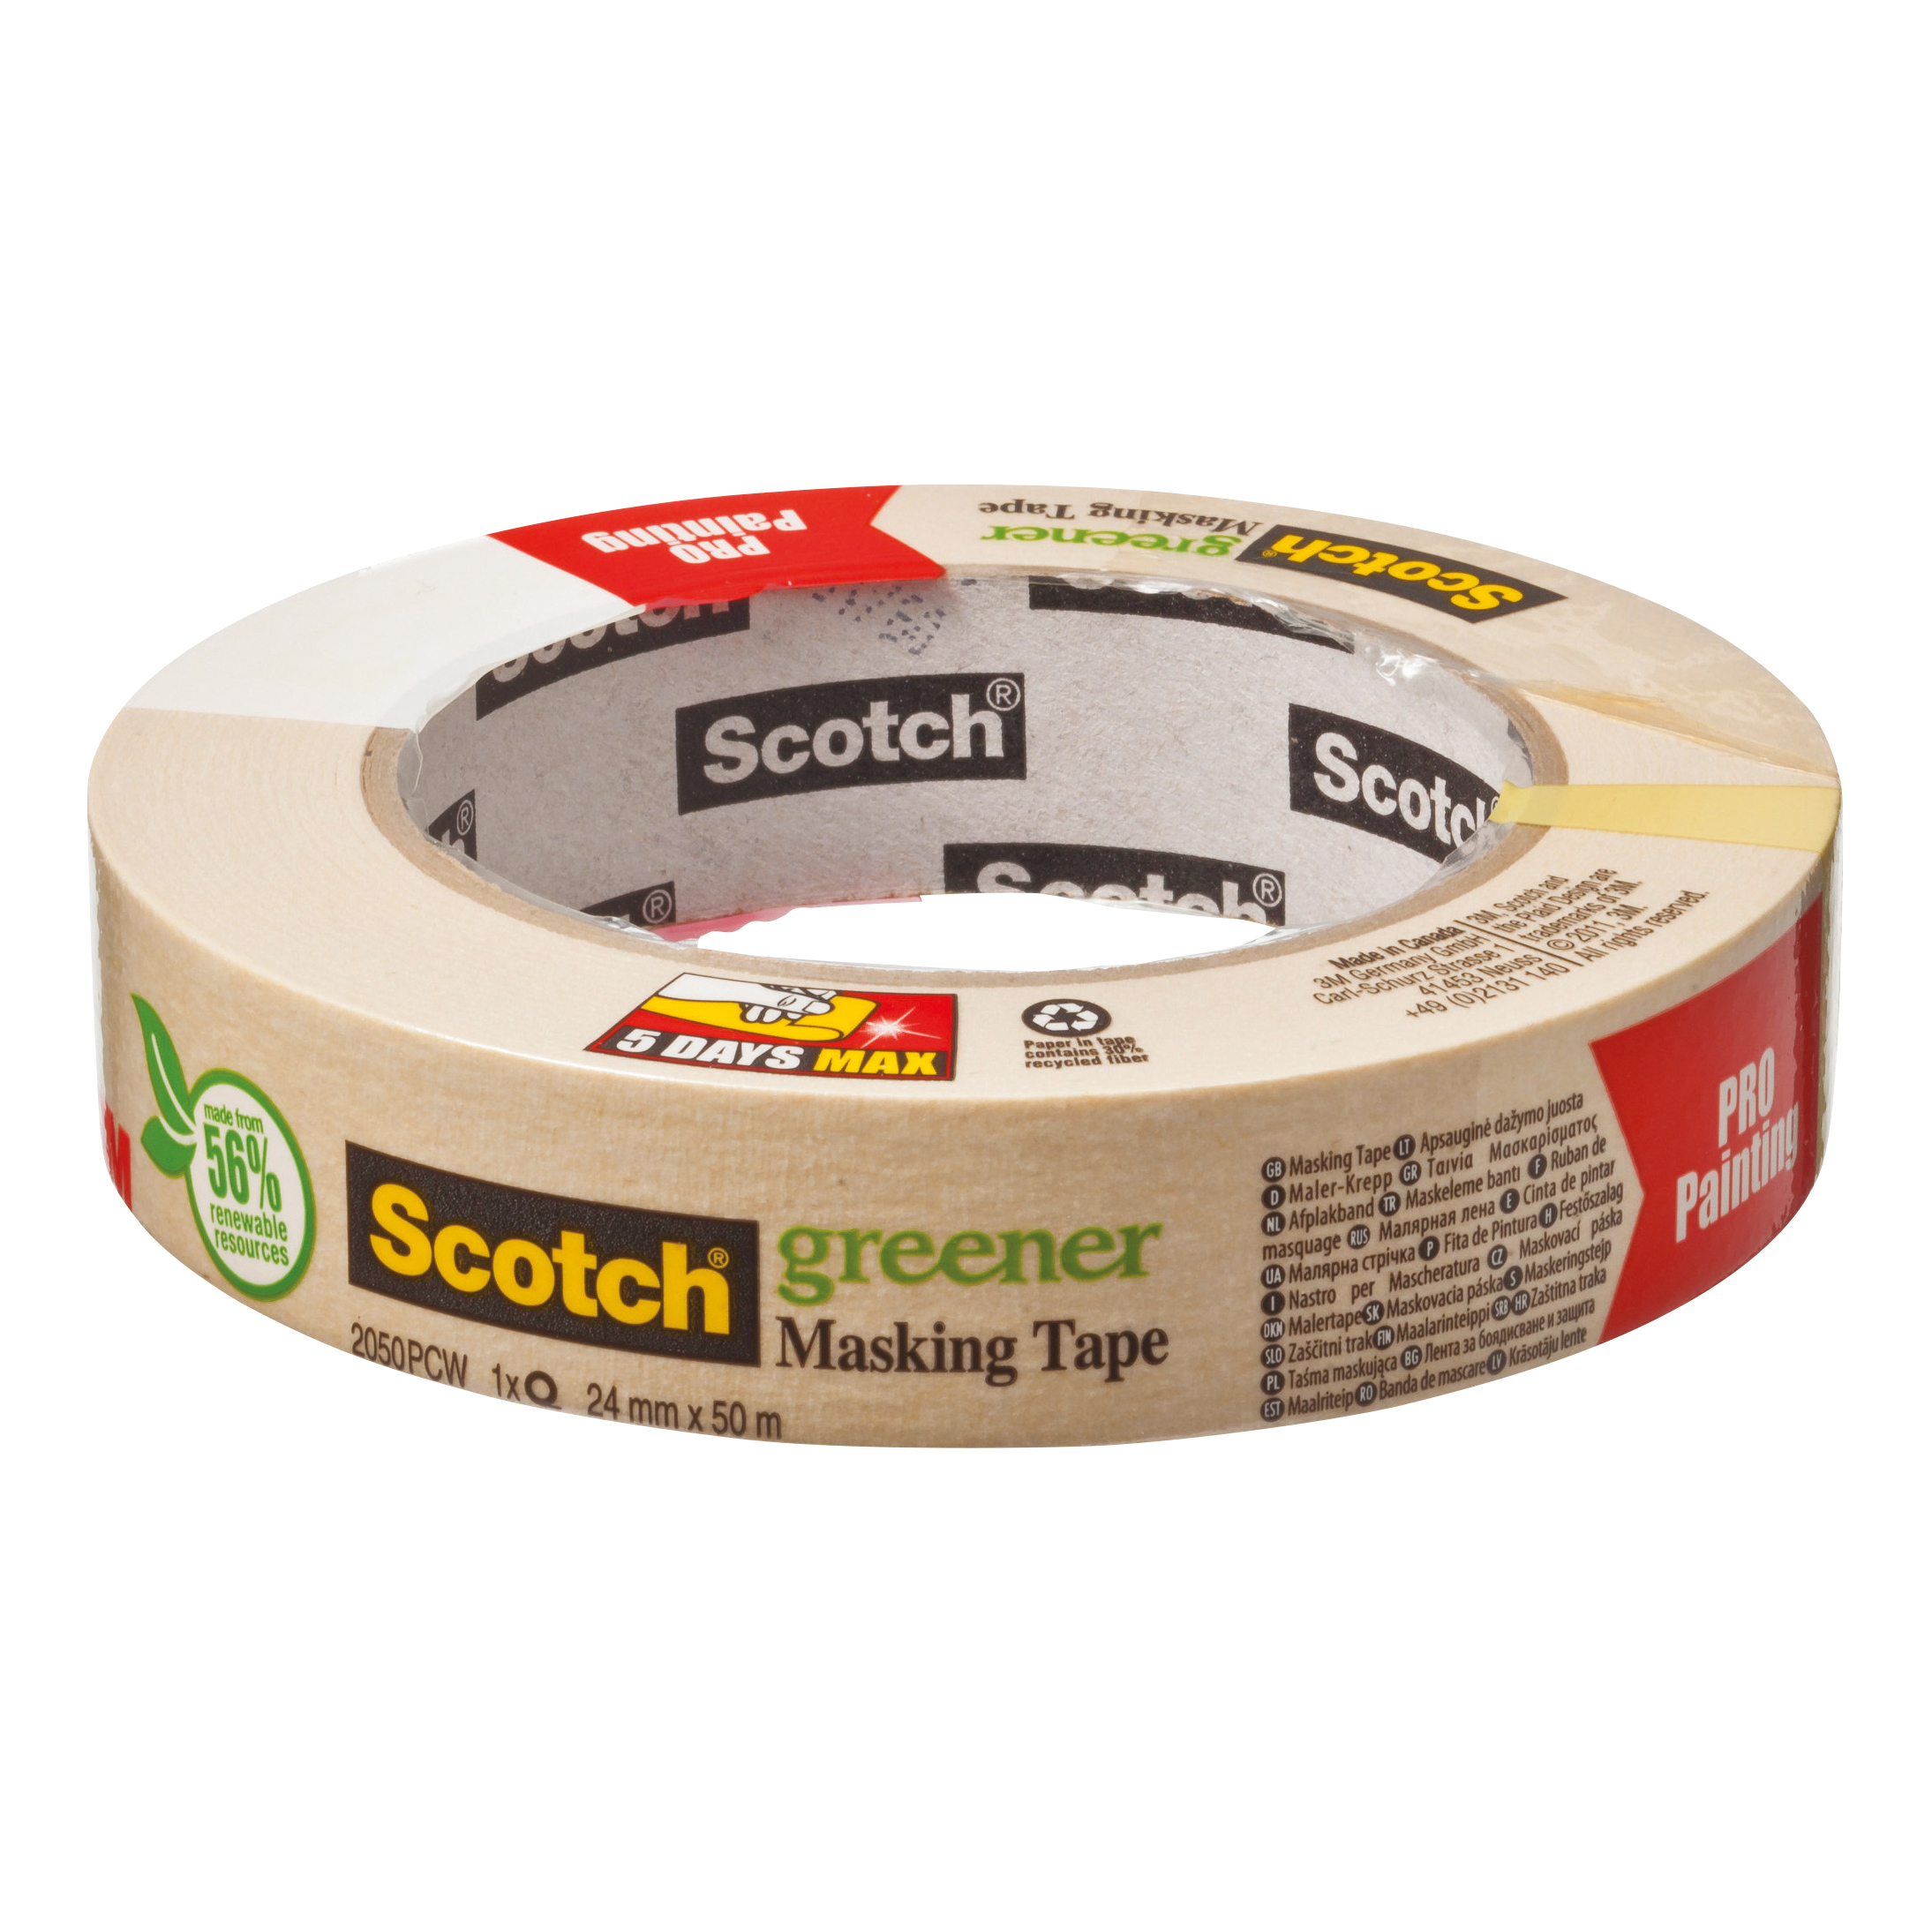 Masking Tape Scotch Greener Masking Tape 24mmx50m Ref 2050 1A PCW